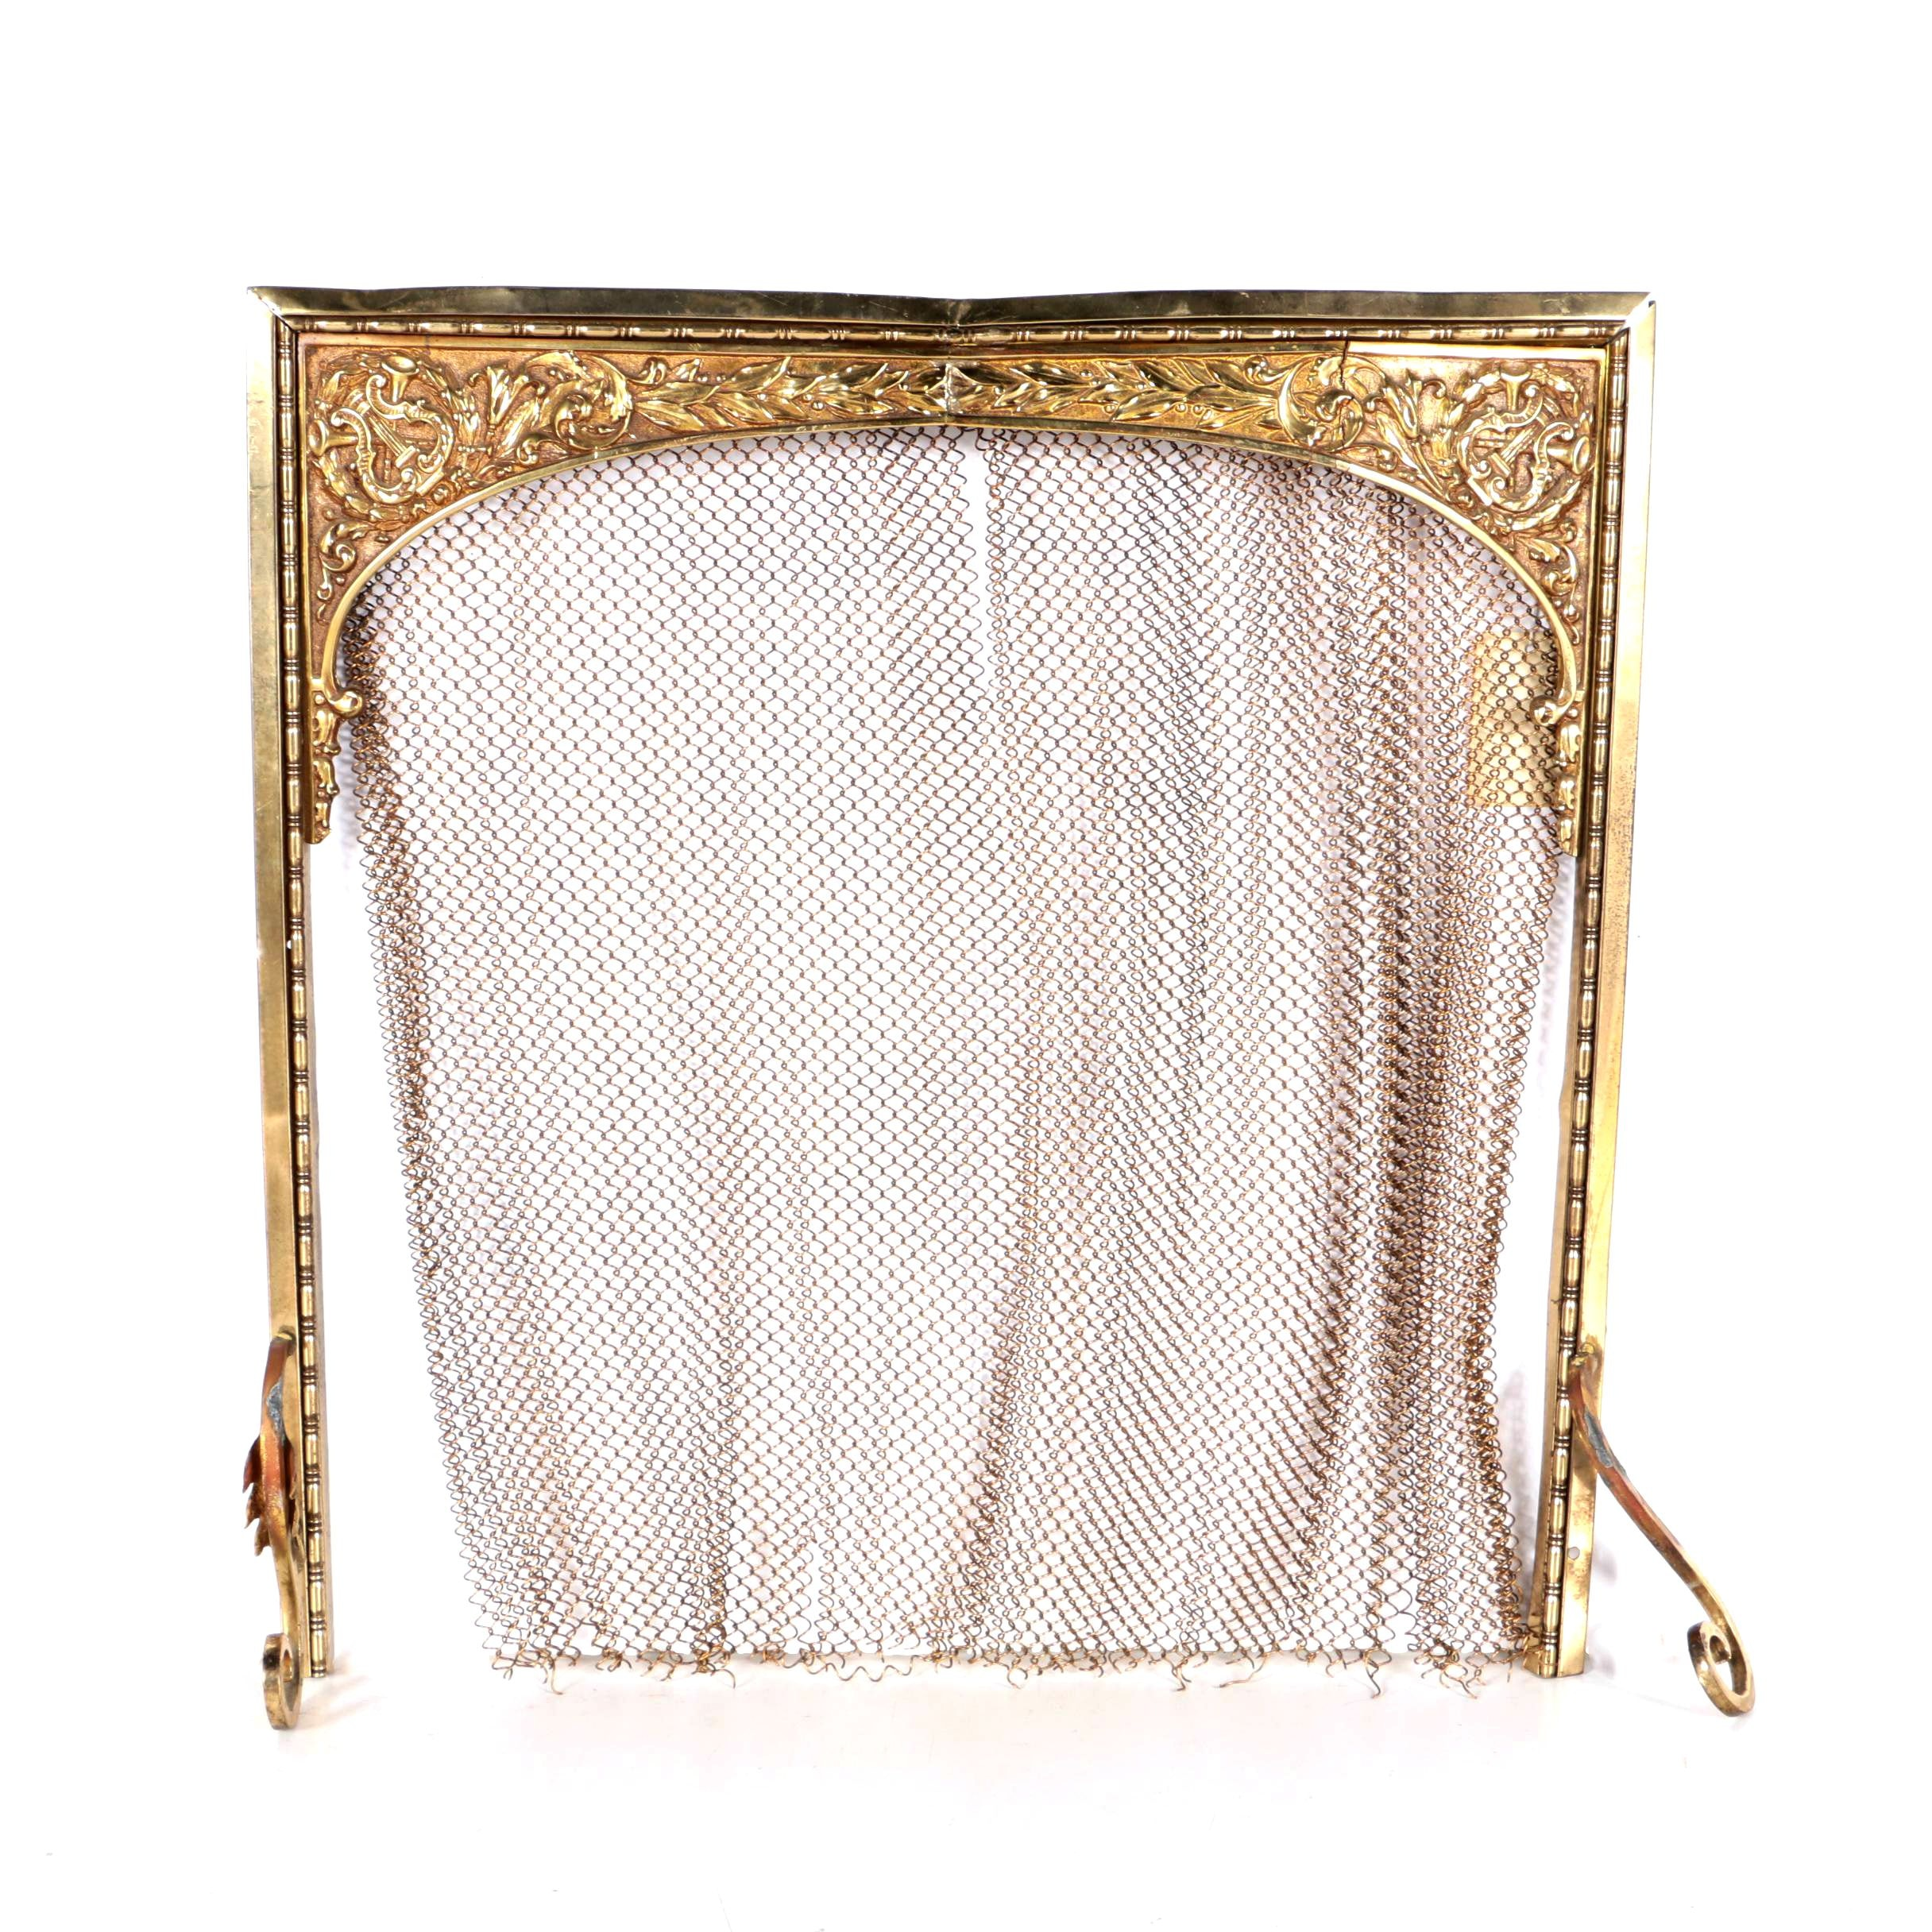 Brass Renaissance Revival Style Fireplace Grate with Mesh Screen